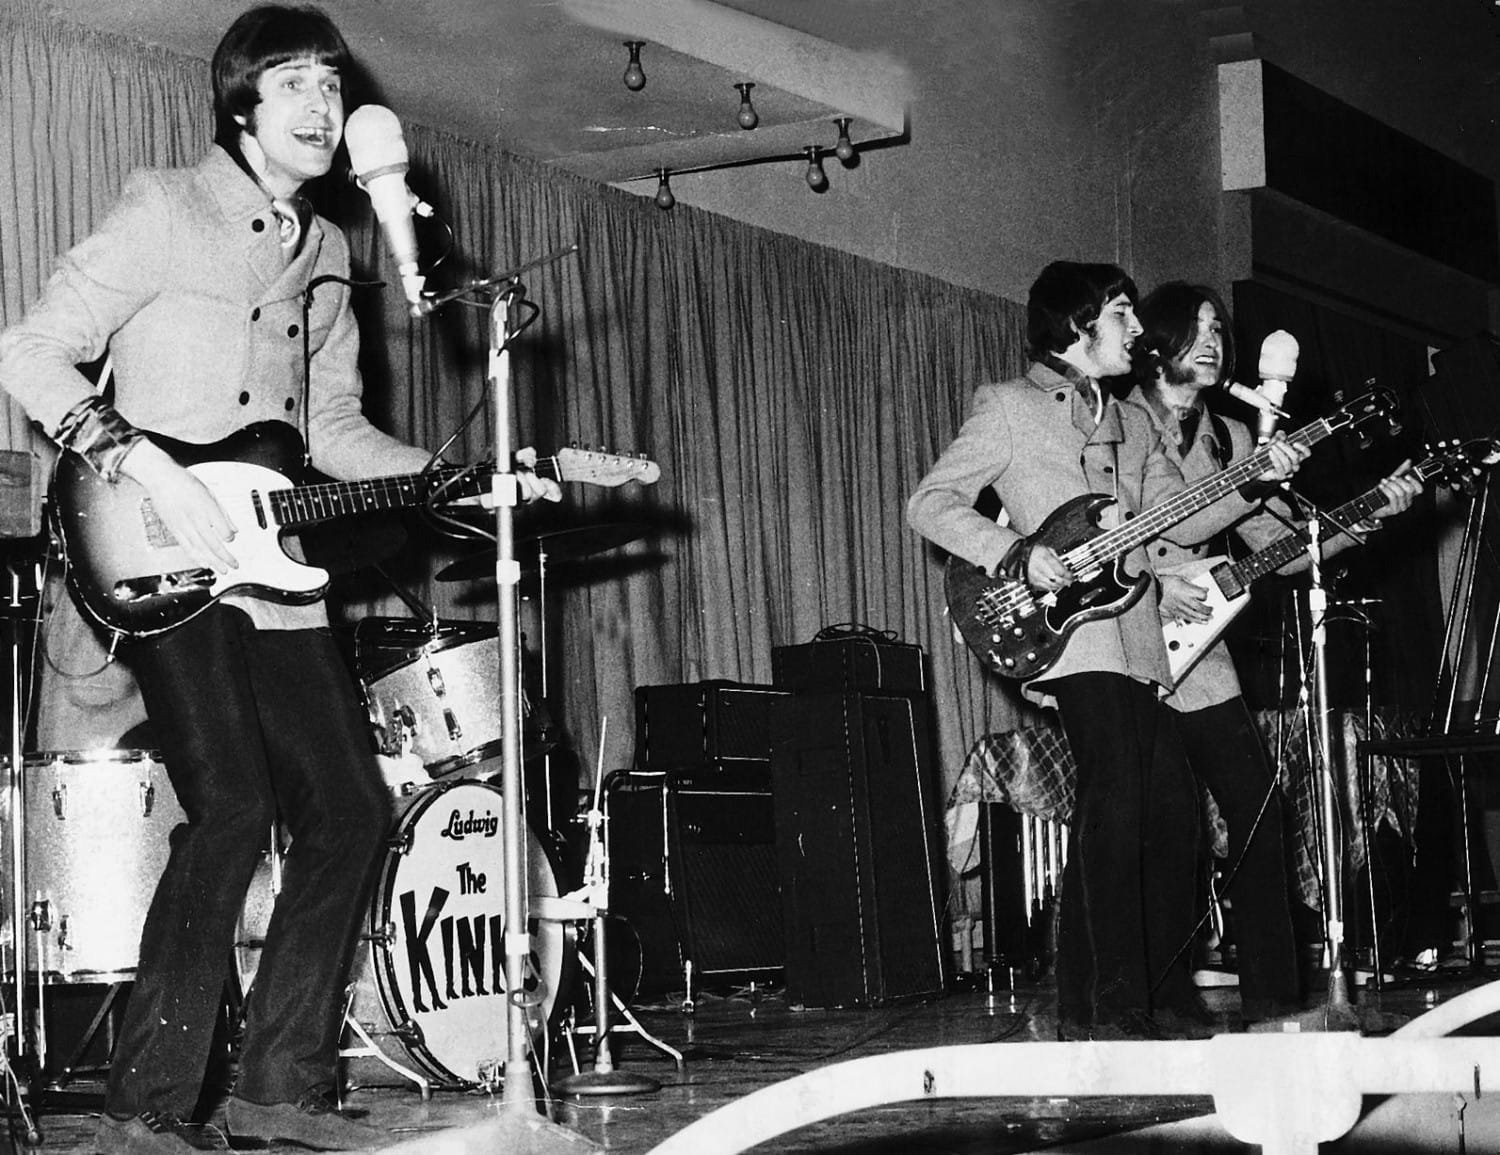 All Day, and All of the Night. The Kinks closed the show.